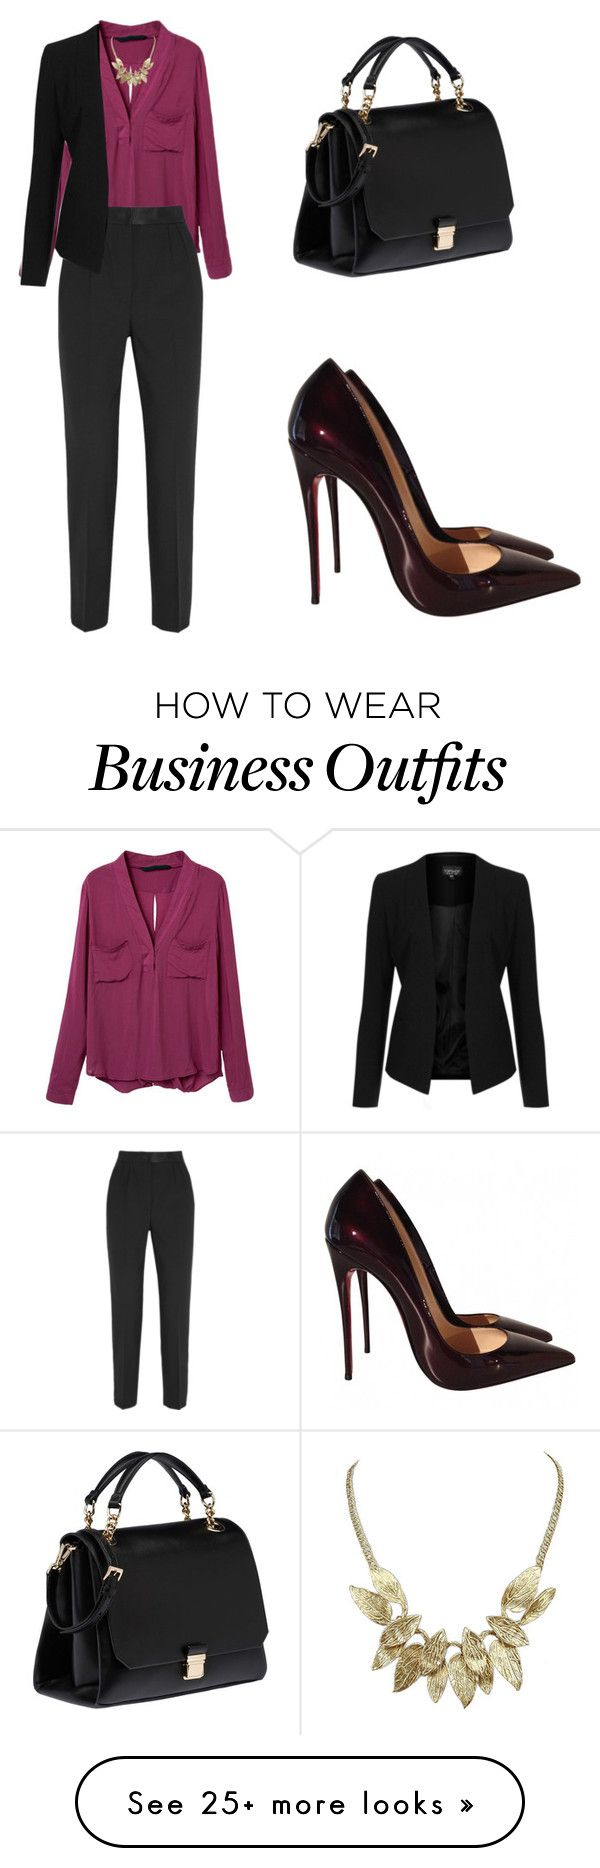 """""""Work Wear"""" by tania-alves on Polyvore featuring Dolce&Gabbana, Topshop, Miu Miu and Christian Louboutin"""